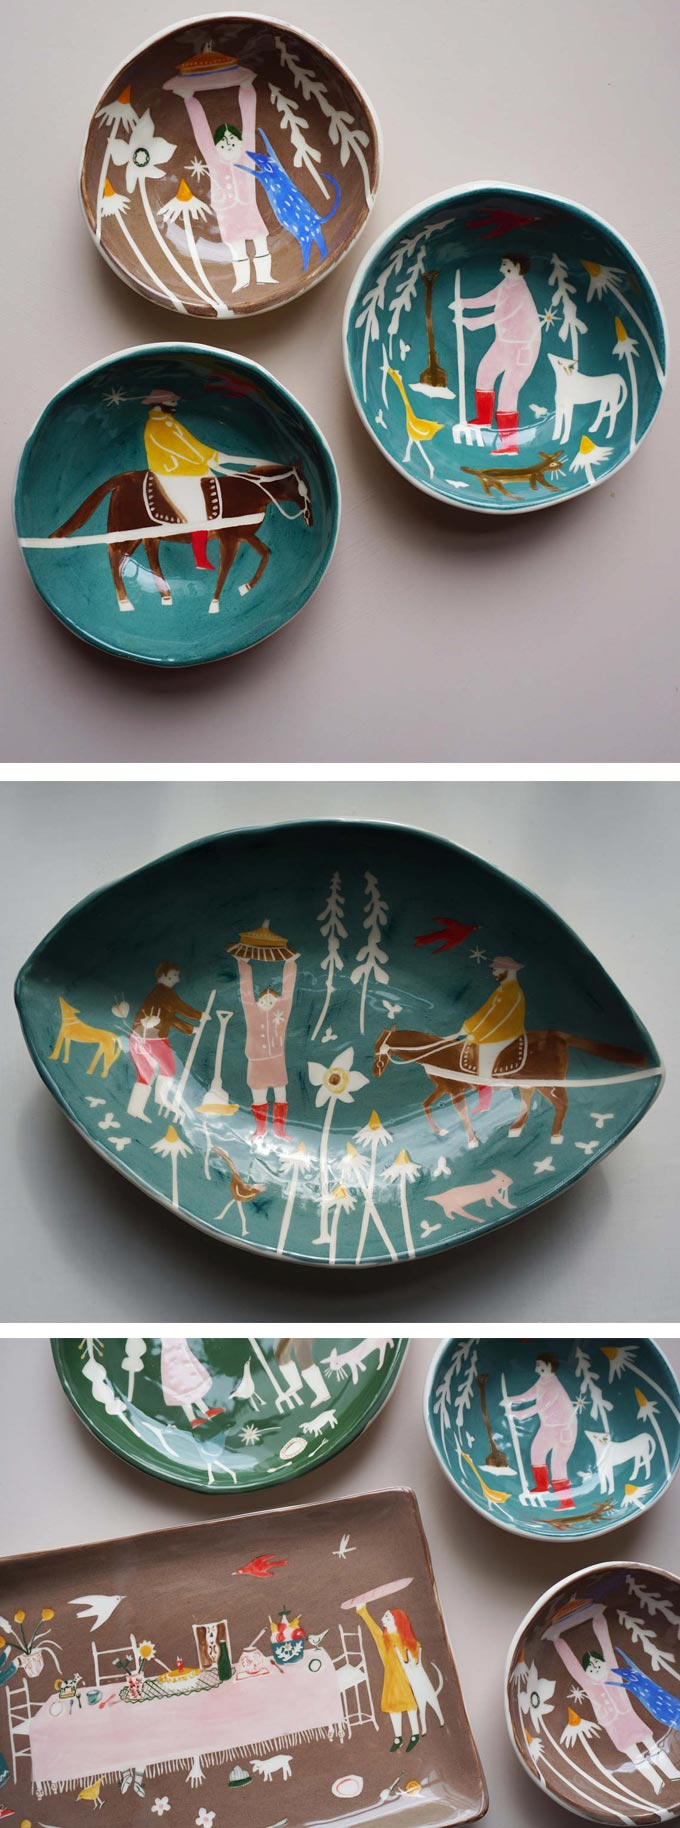 Ceramics by Polly Fern